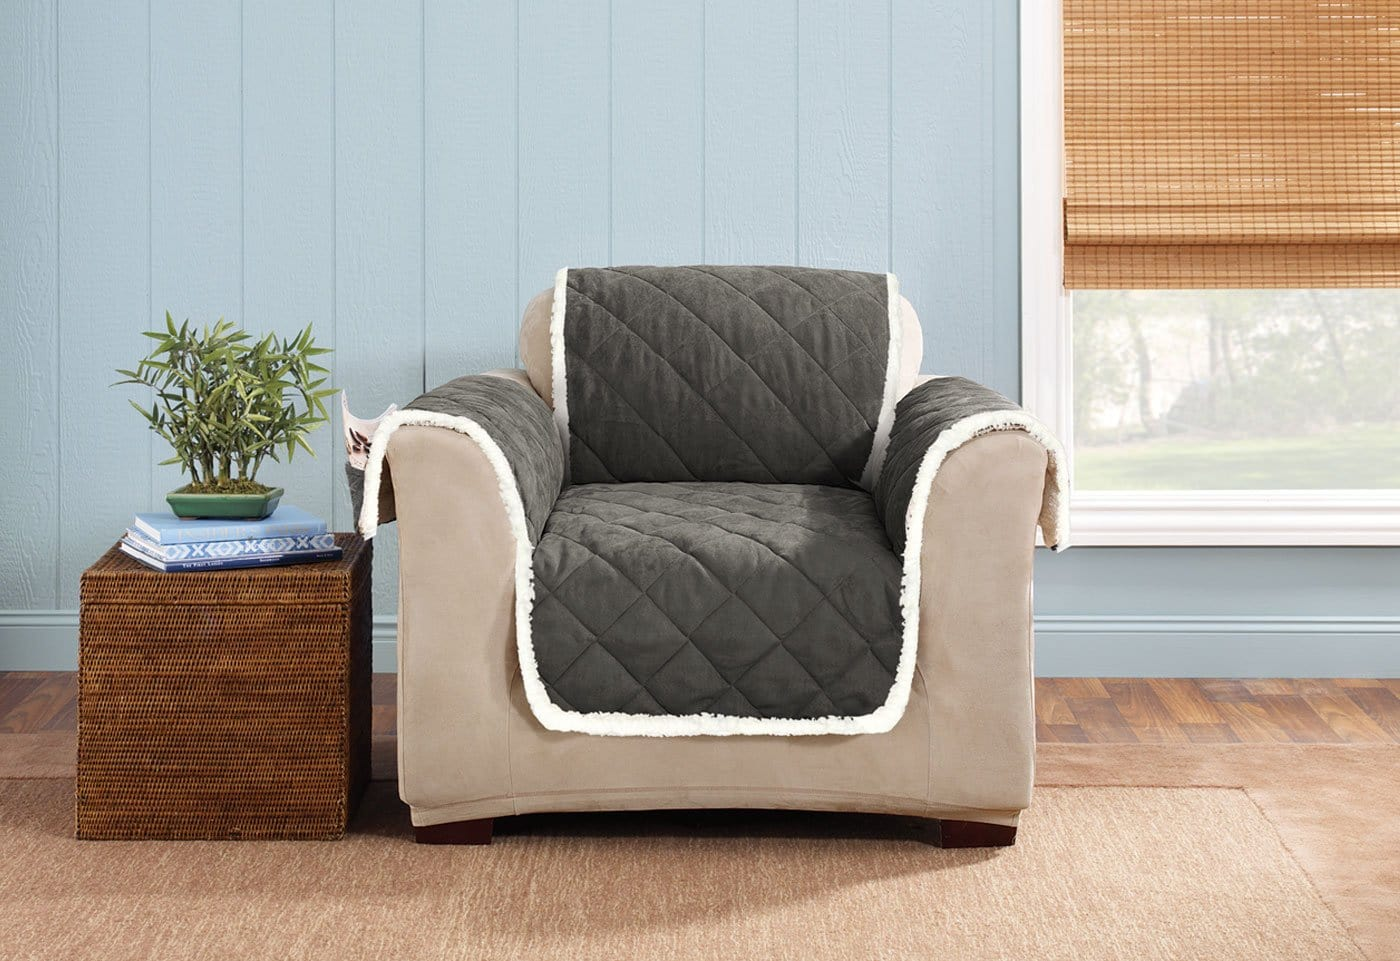 Soft Suede & Sherpa Chair Furniture Cover 100% Polyester Pet Furniture Cover Machine Washable - Chair / Graphite/Cream